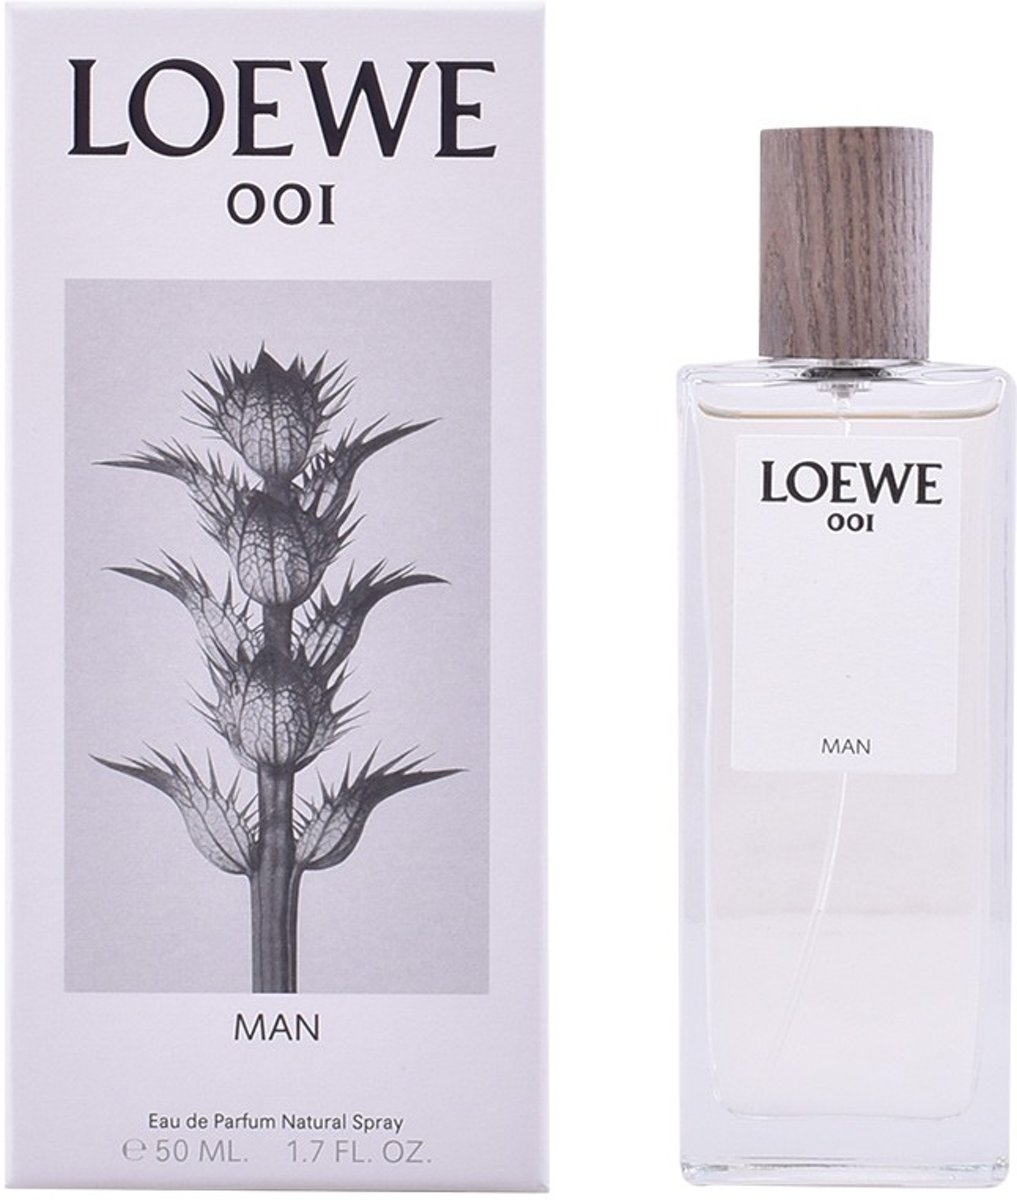 MULTI BUNDEL 2 stuks LOEWE 001 MAN Eau de Perfume Spray 50 ml